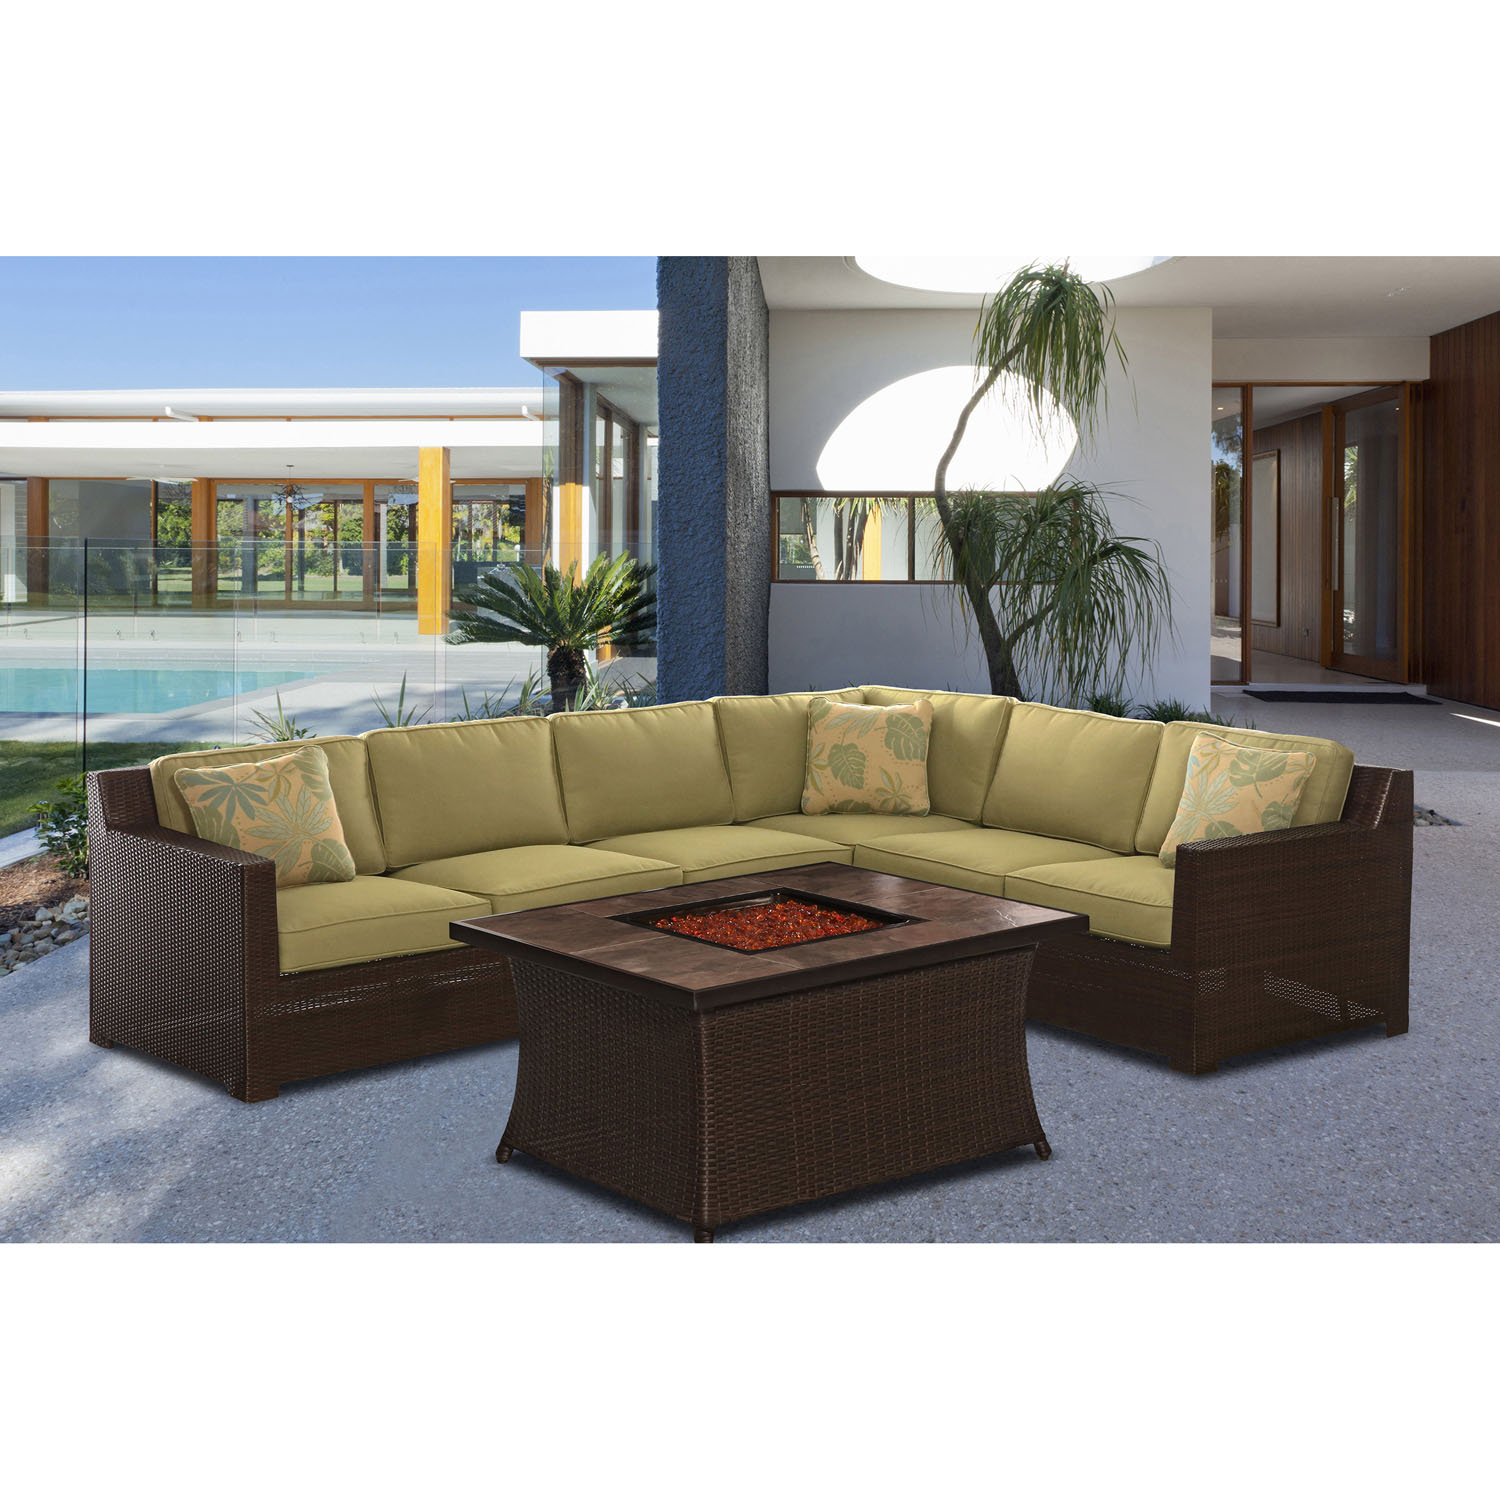 Hanover Metropolitan Woven Fire Pit Lounge Set with Faux-Stone Tile Top